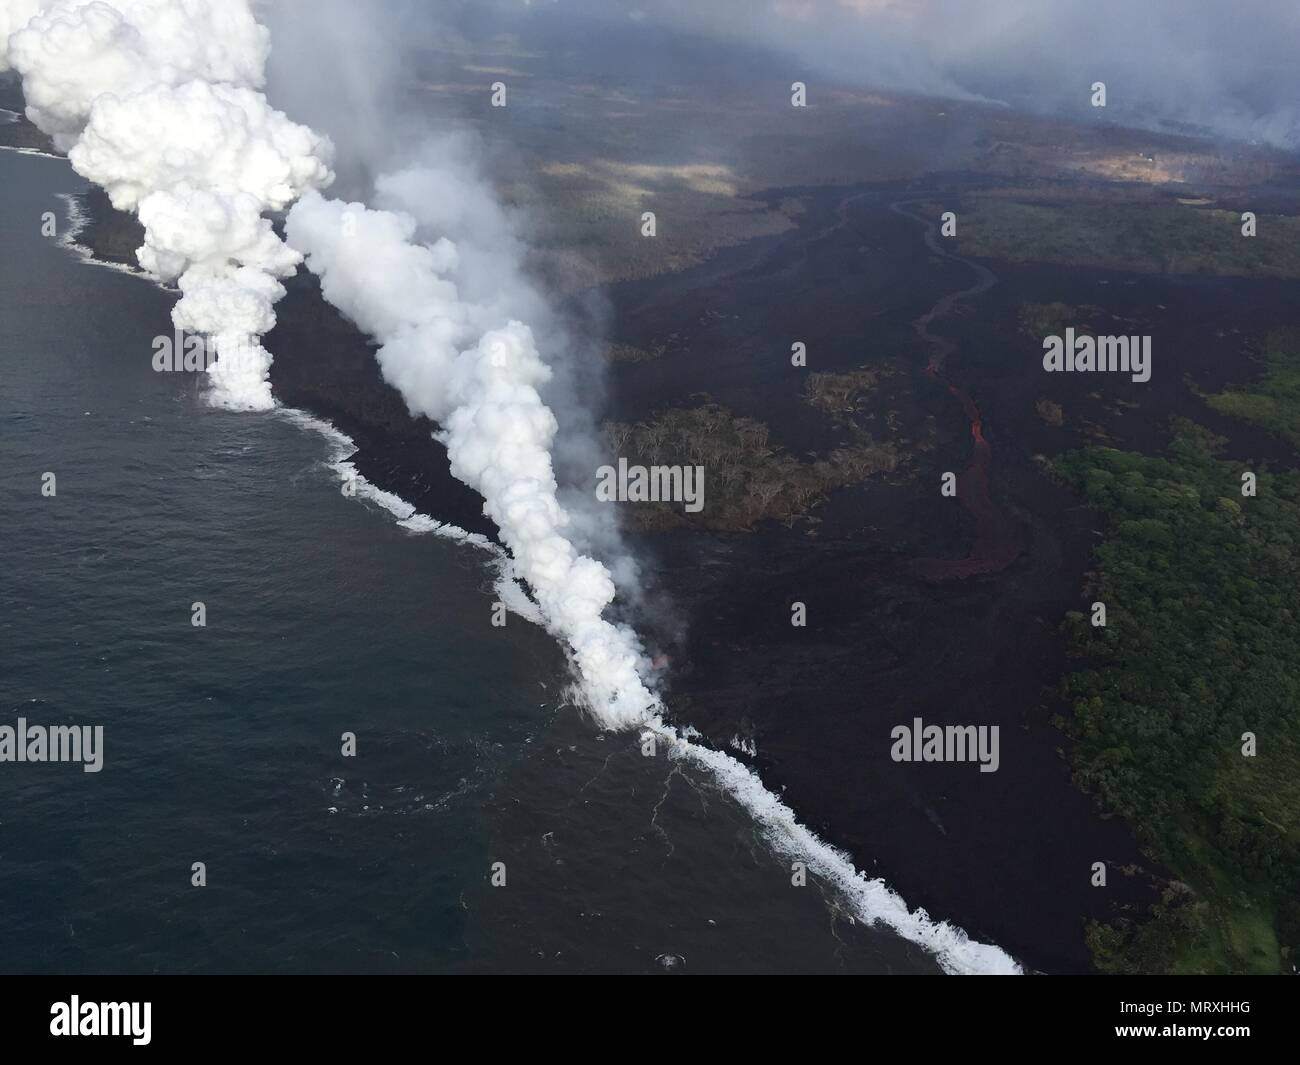 Lava and poisonous sulfur dioxide plumes rise as molten